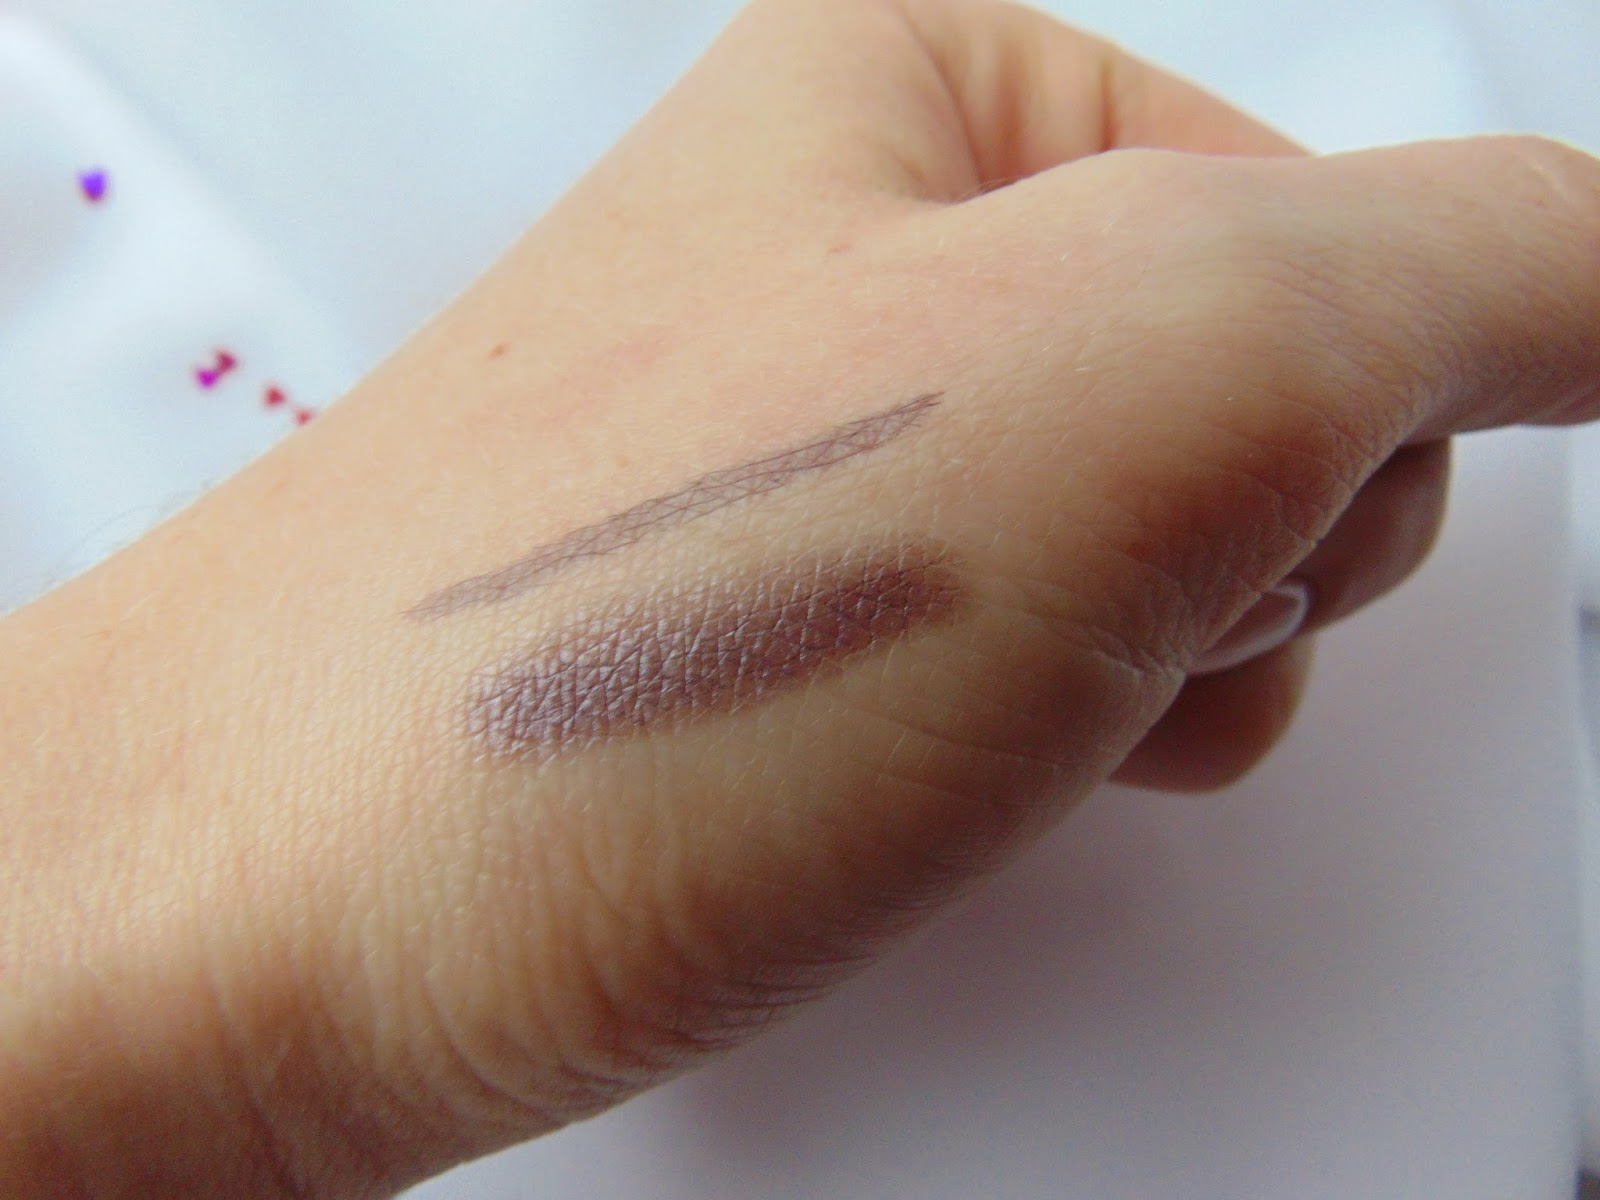 p2 Limited Edition: Just dream like - visionary beauty eye shadow & liner - Modern Violet Swatch - www.annitschkasblog.de